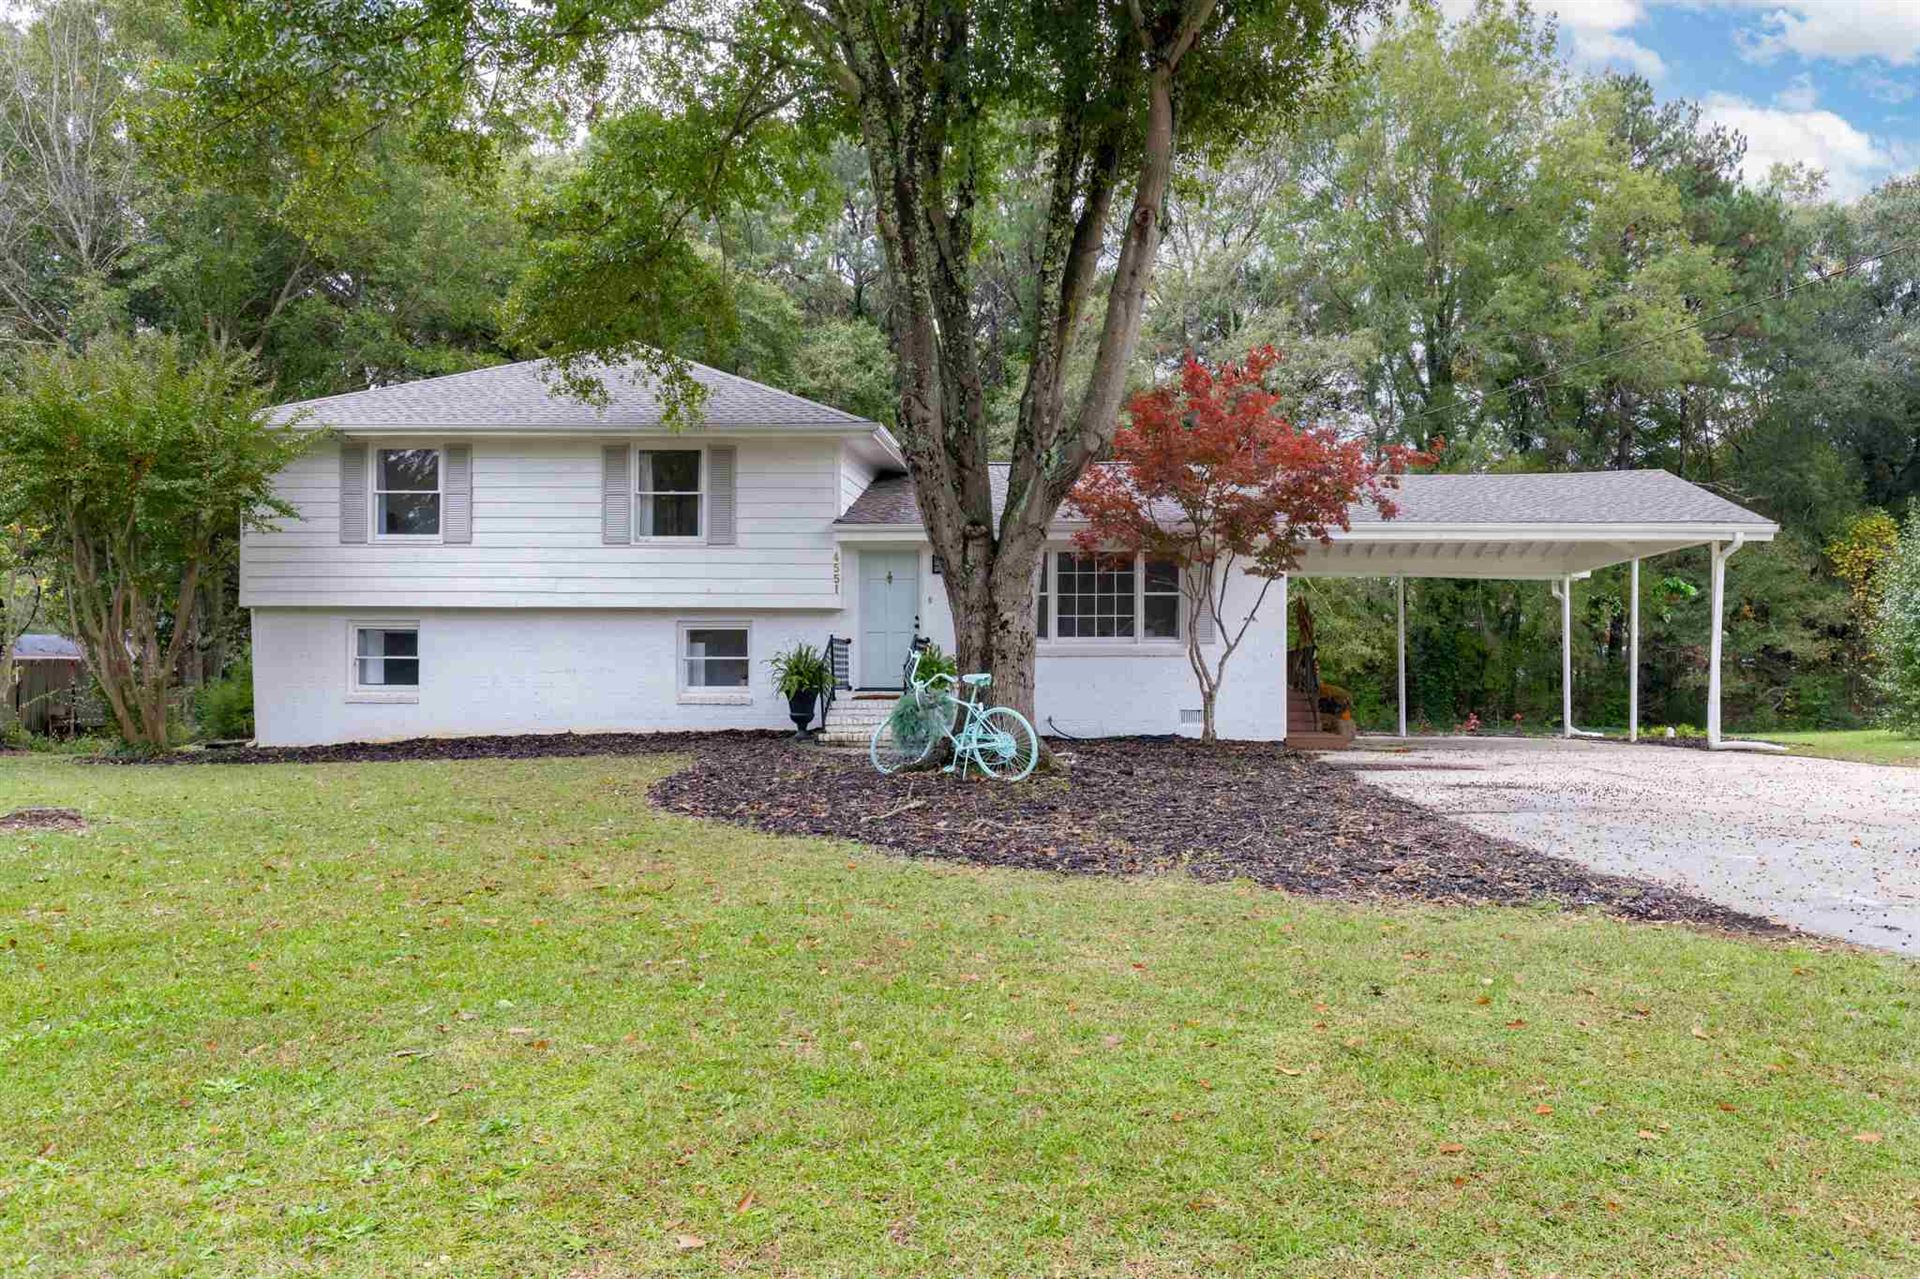 4551 Fairfax Place, Powder Springs, GA 30127 - MLS#: 8880173